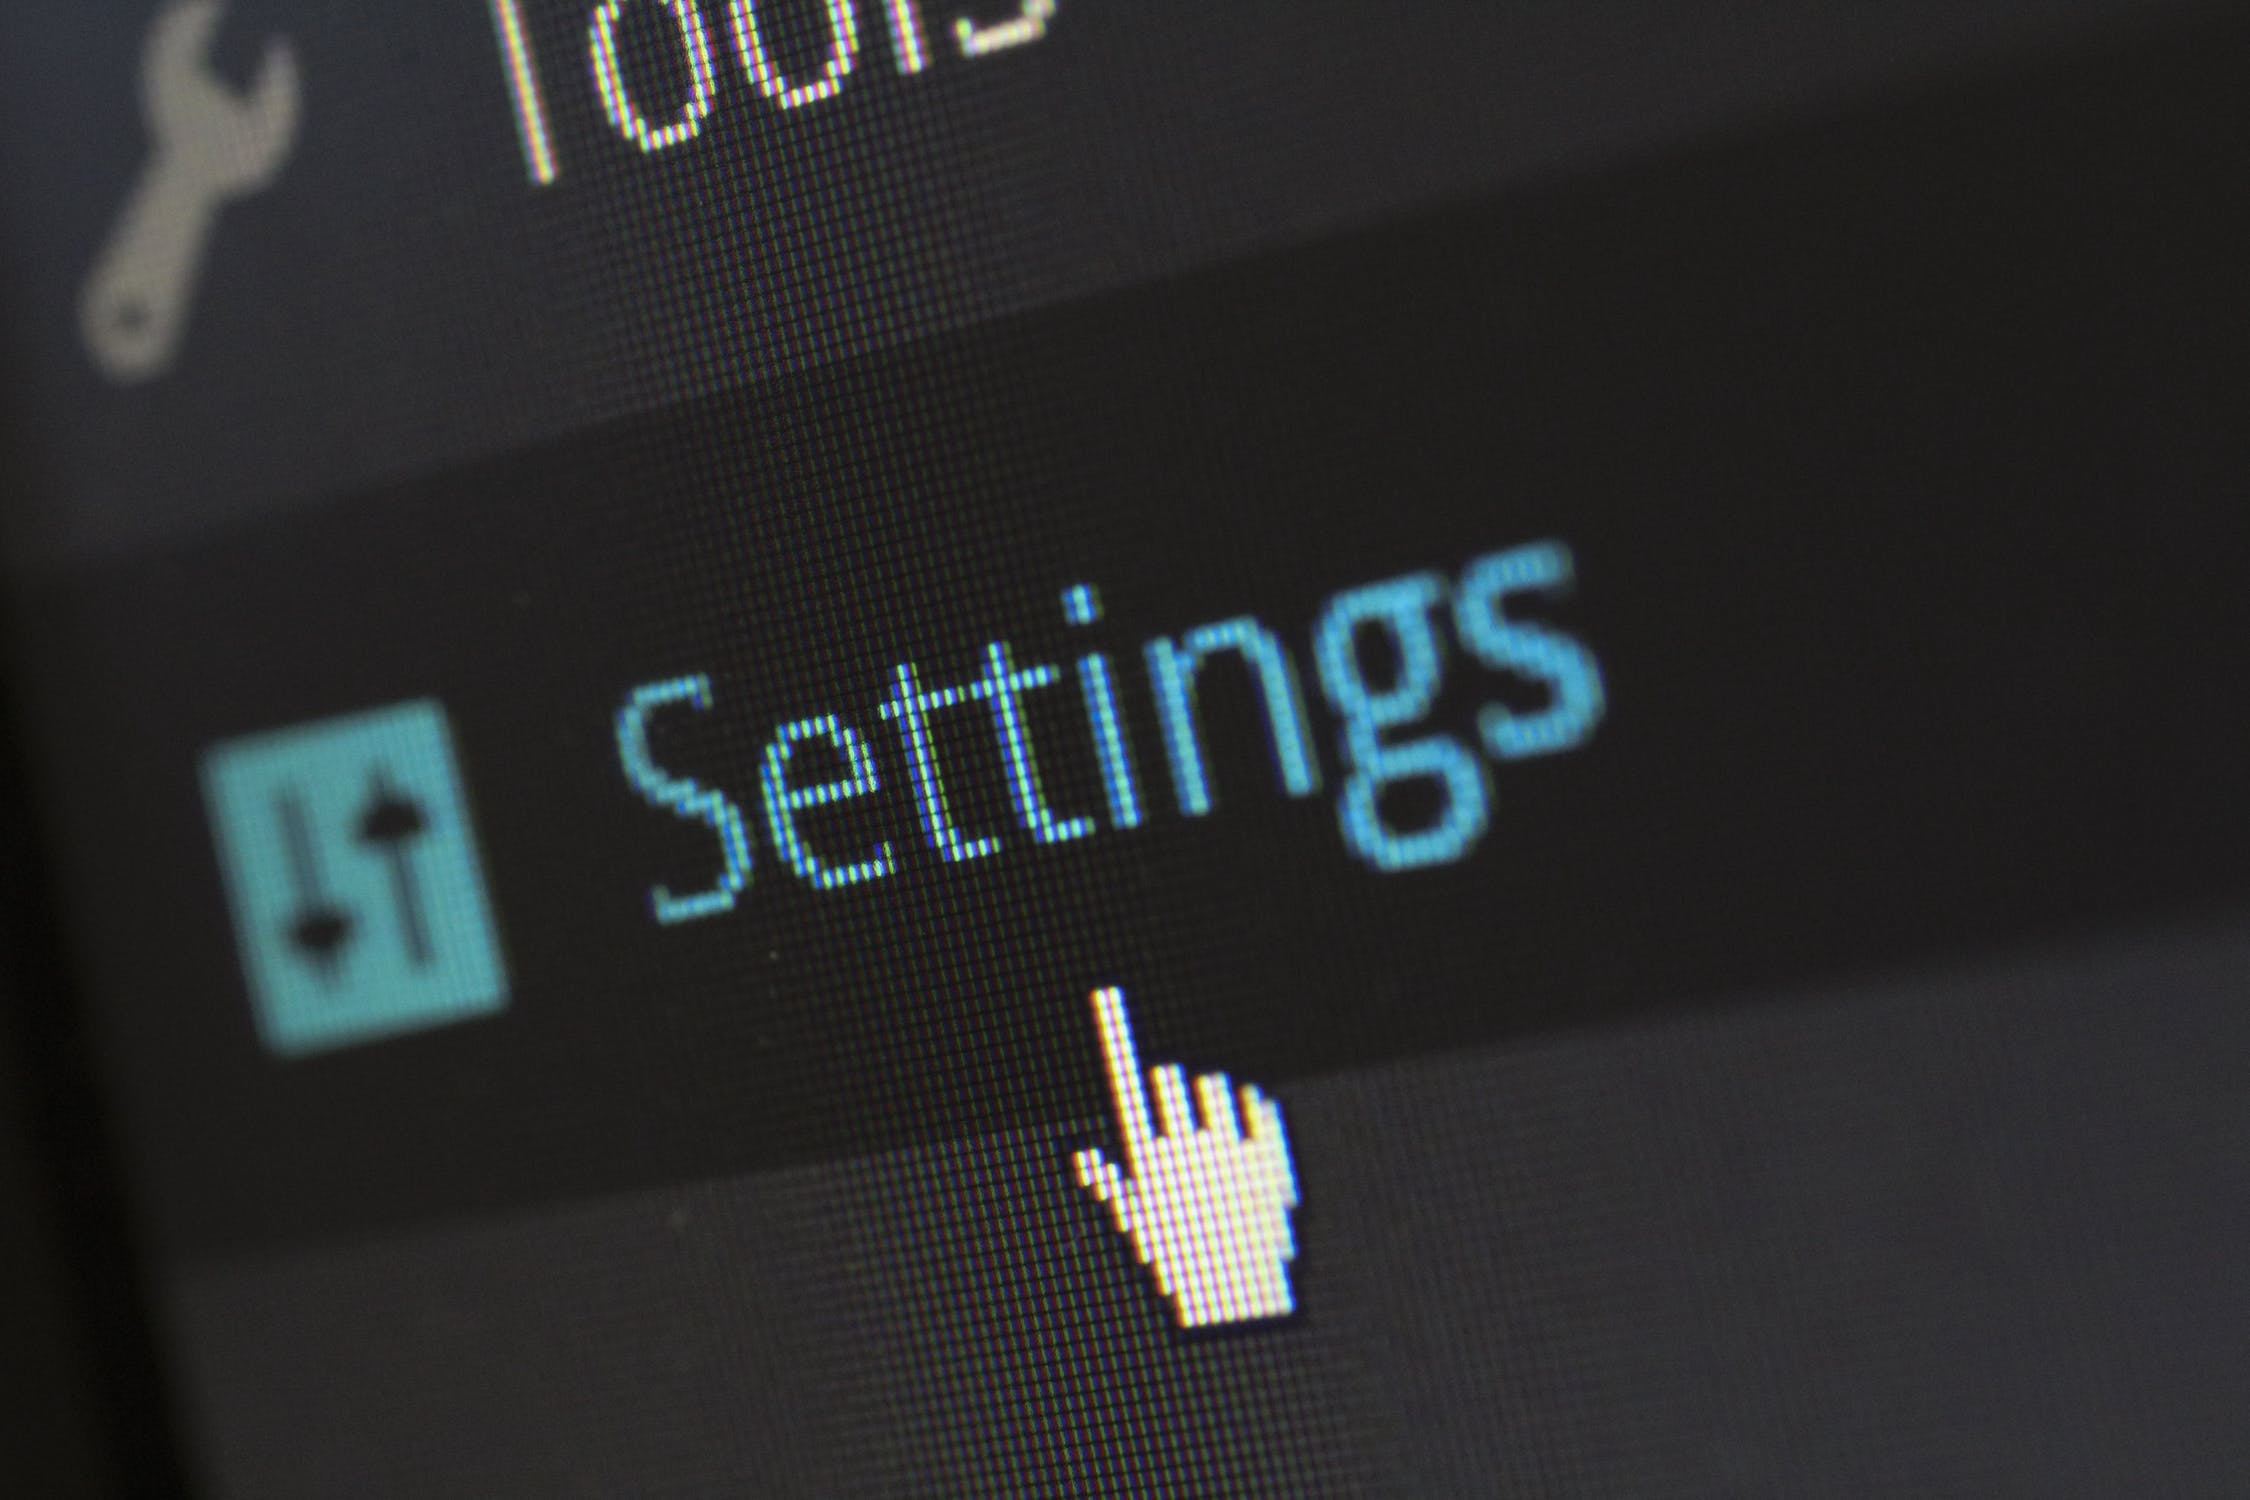 how to get control panel in windows 10